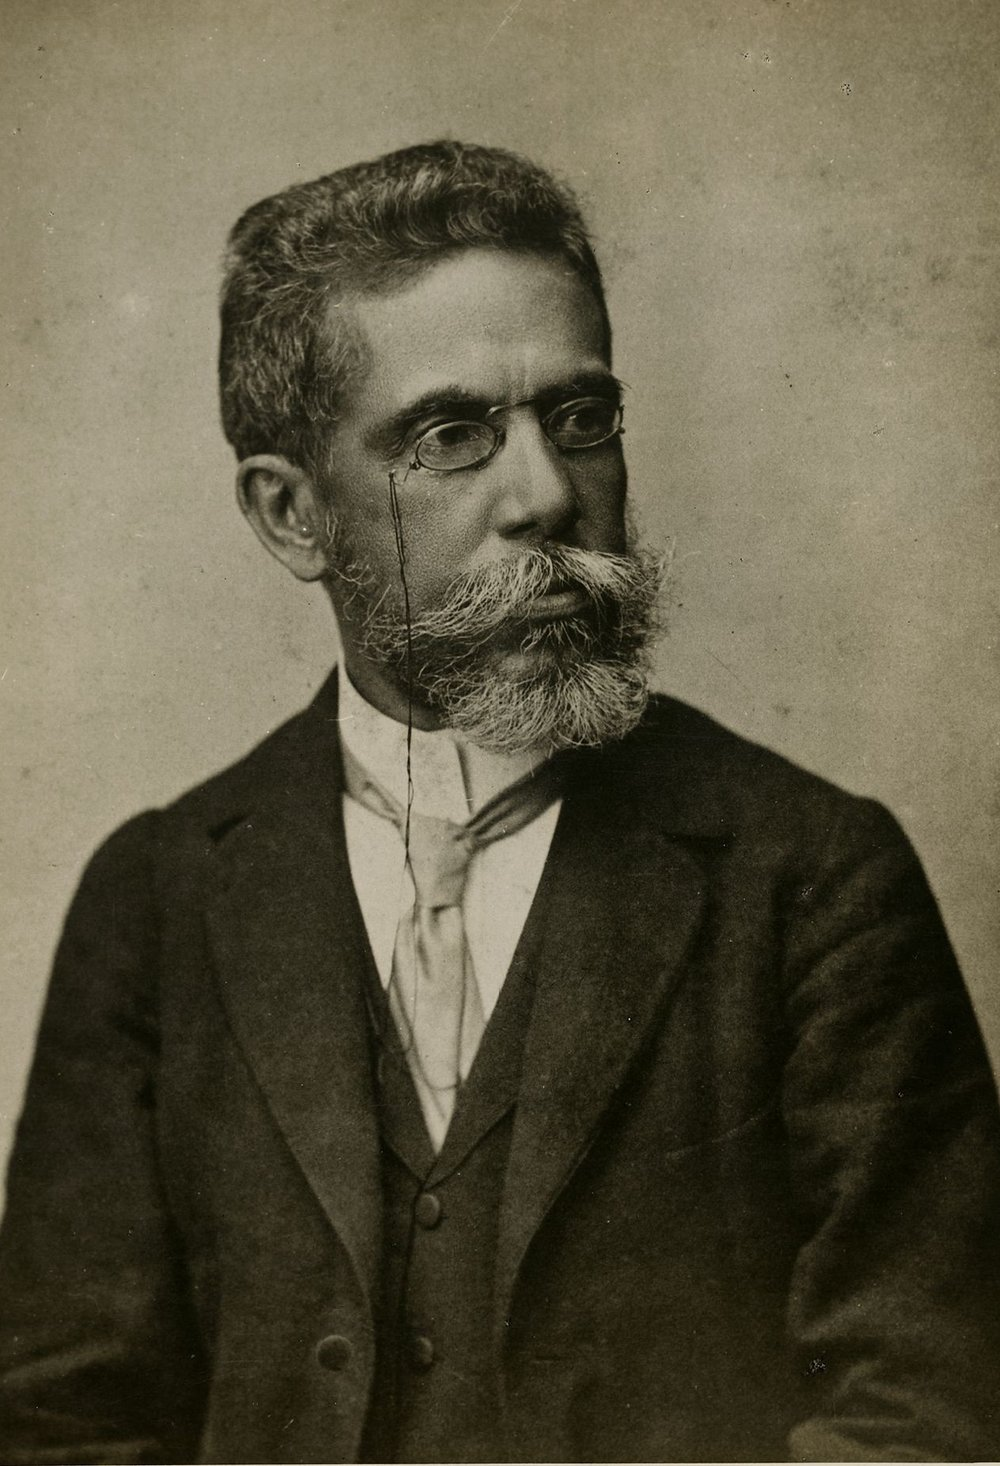 Machado de Assis - founder of the Academia Brasileira de Letras